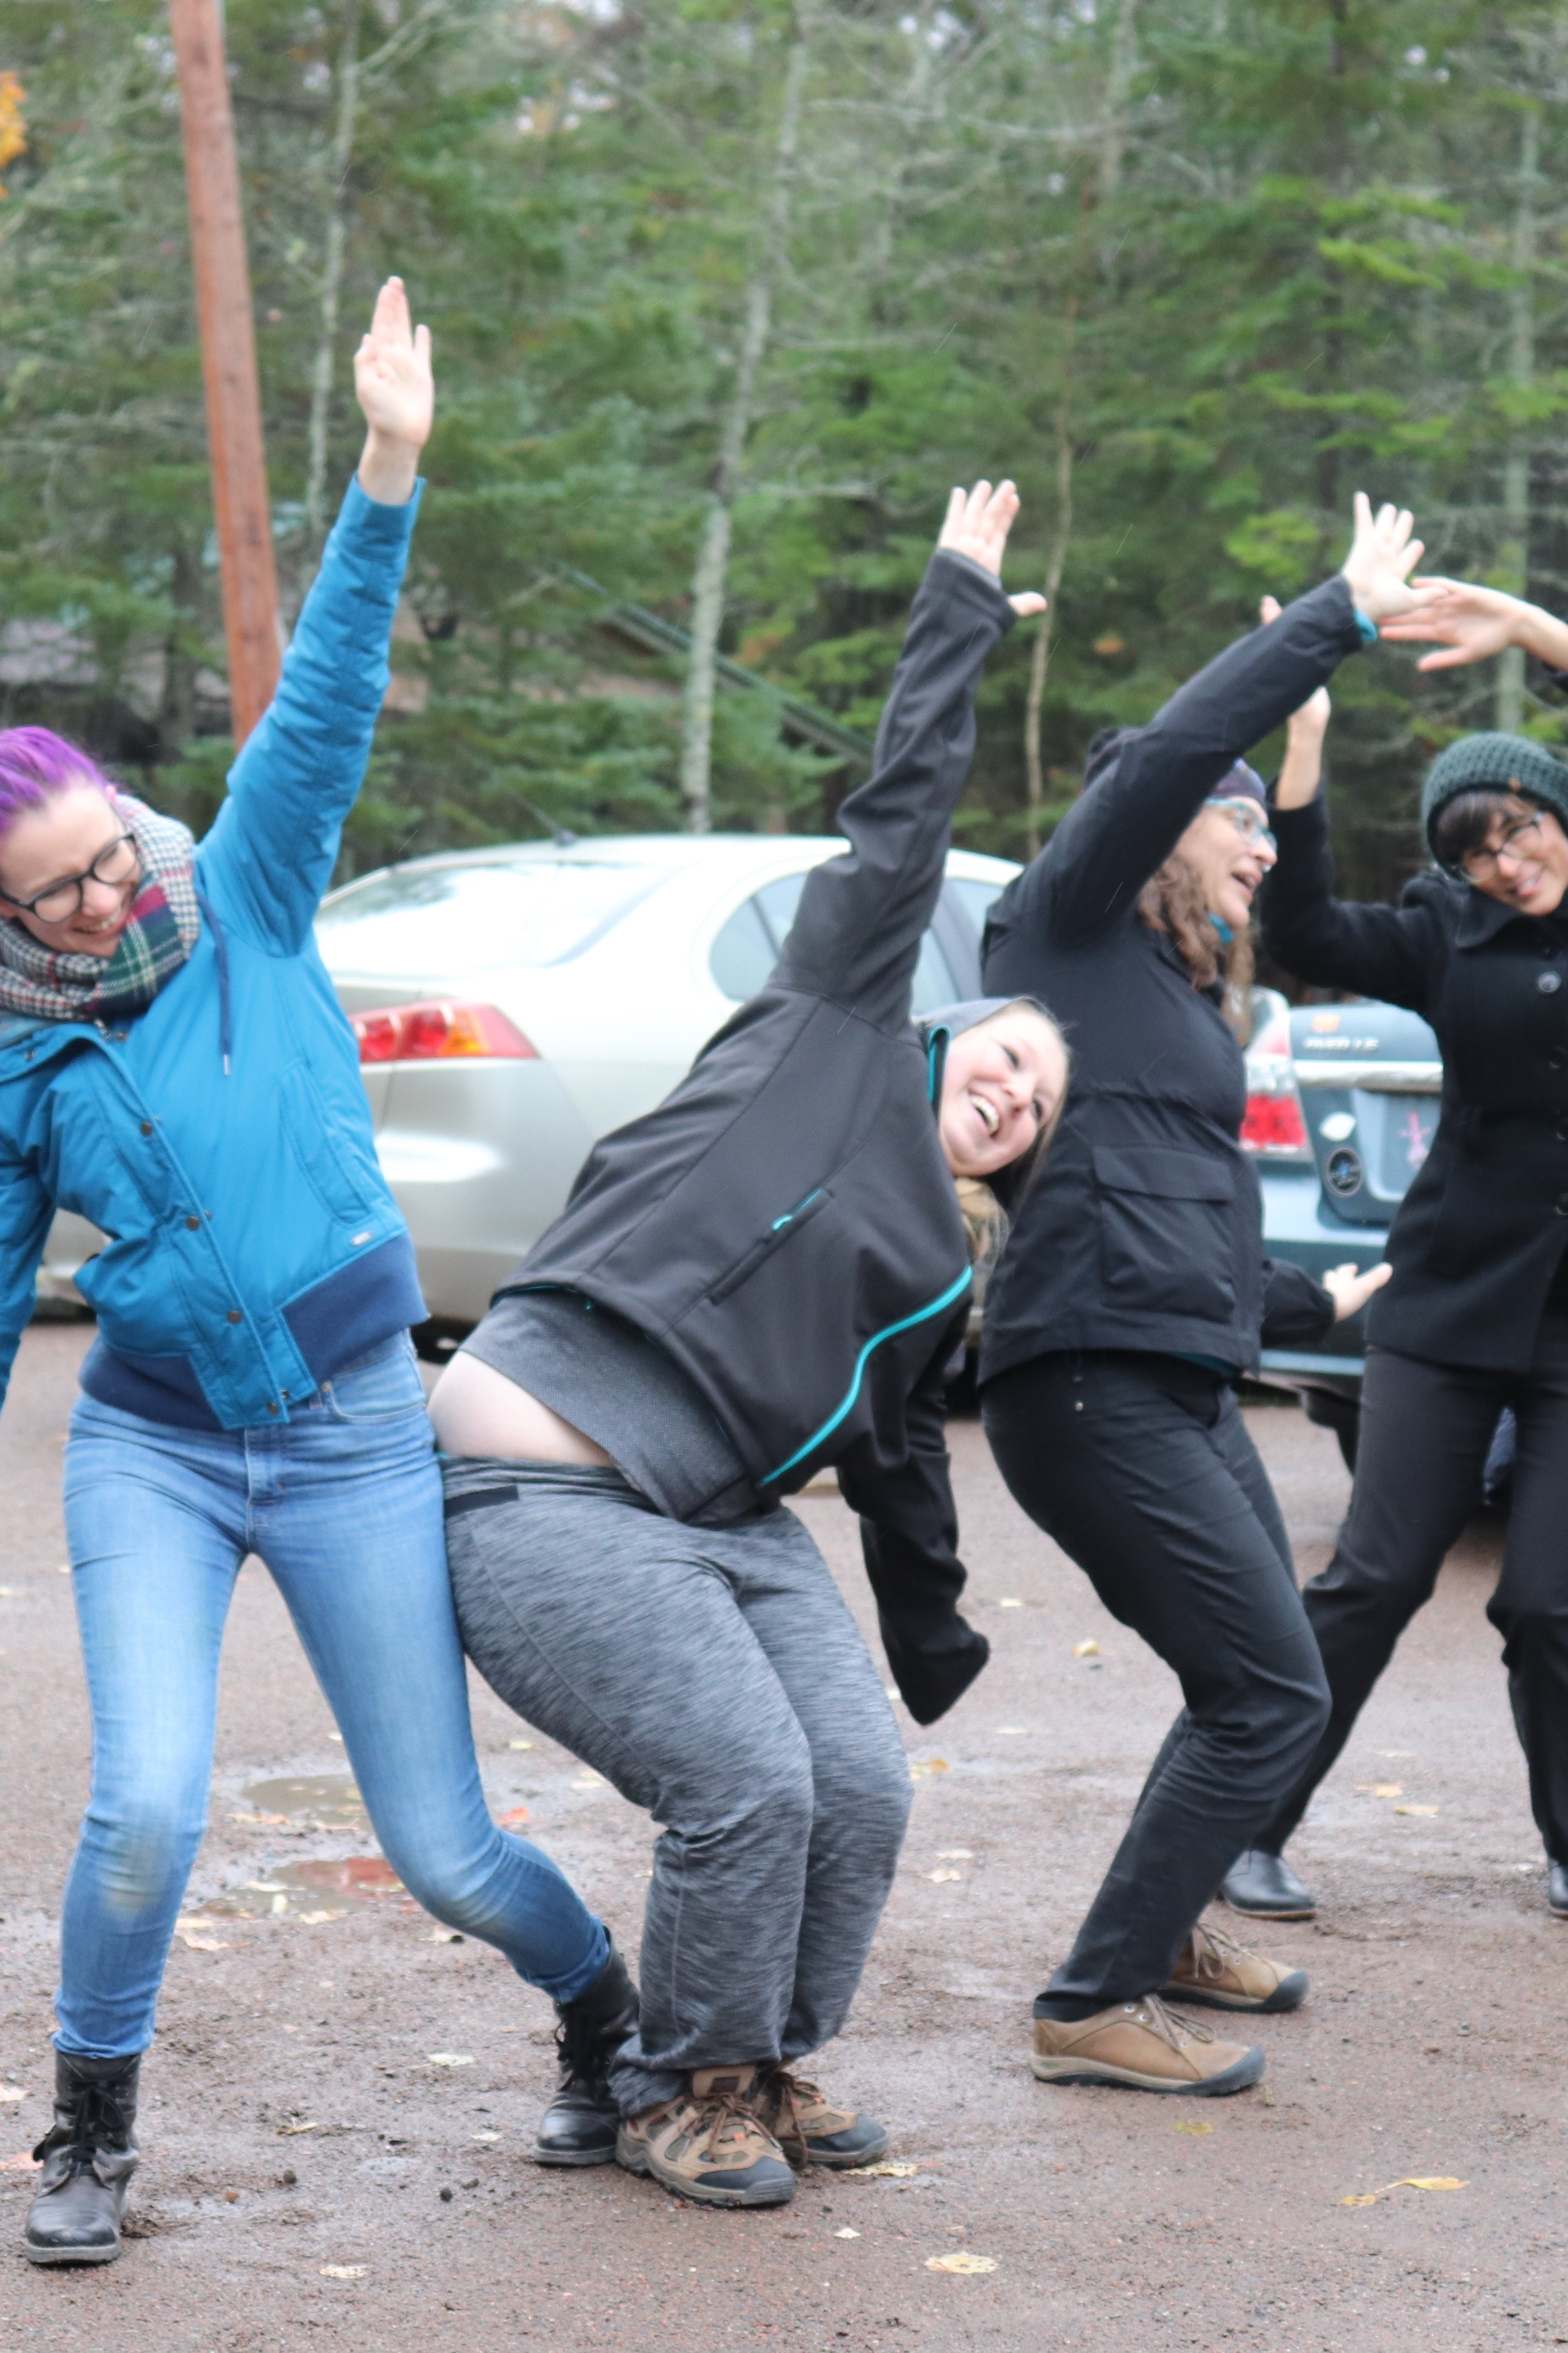 Four adults in casual outdoor clothing are smiling and laughing while making large dramatic gestures with their arms